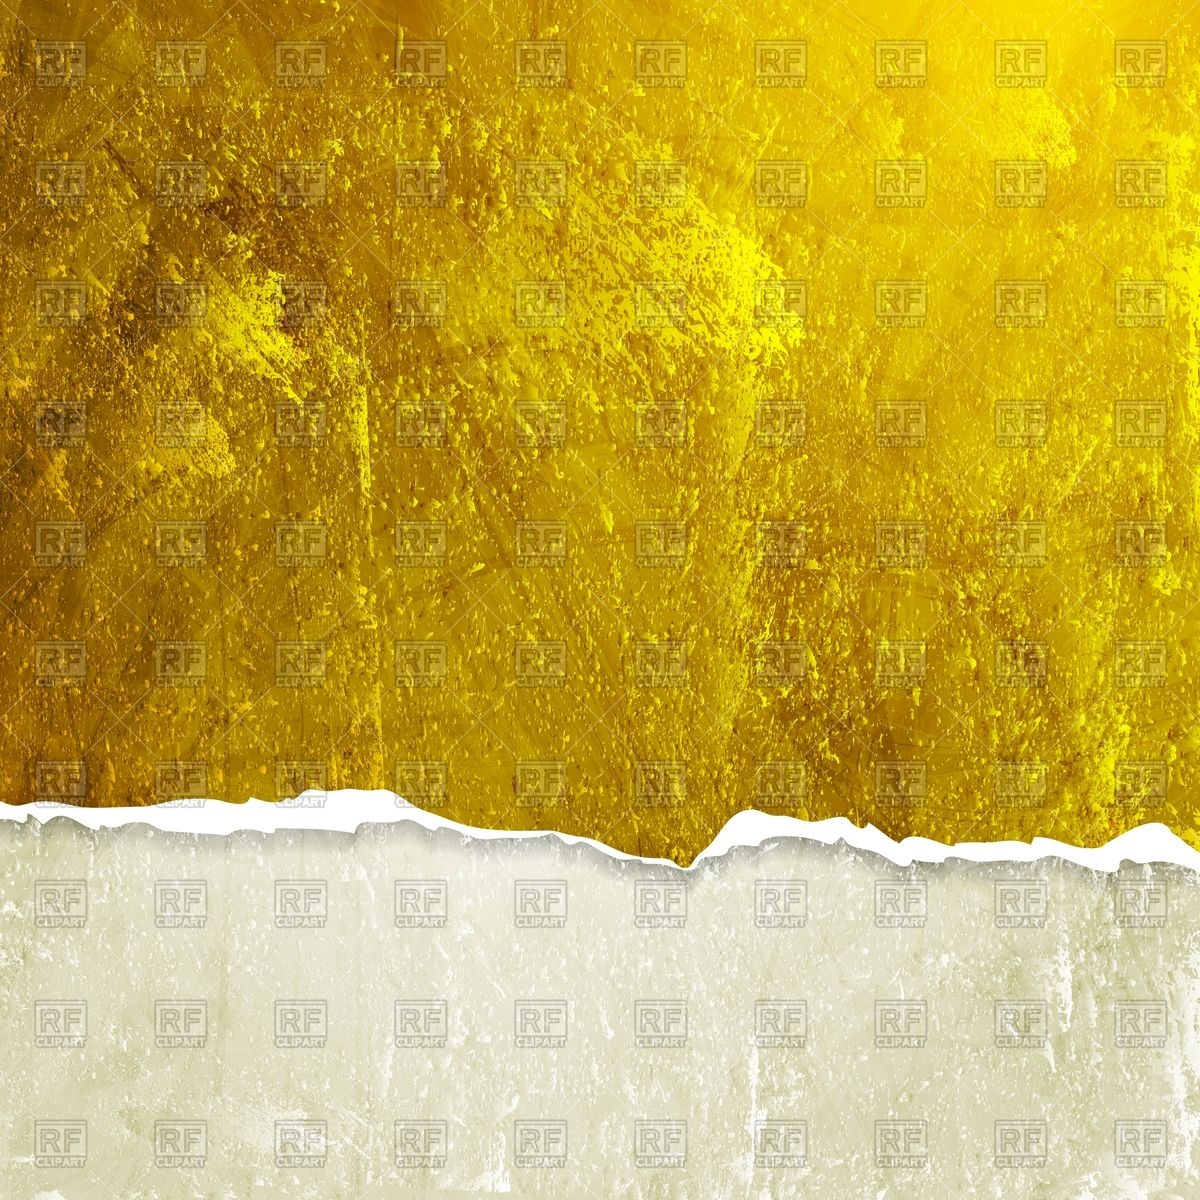 Yellow grunge background with ragged edge Vector Image #55390.